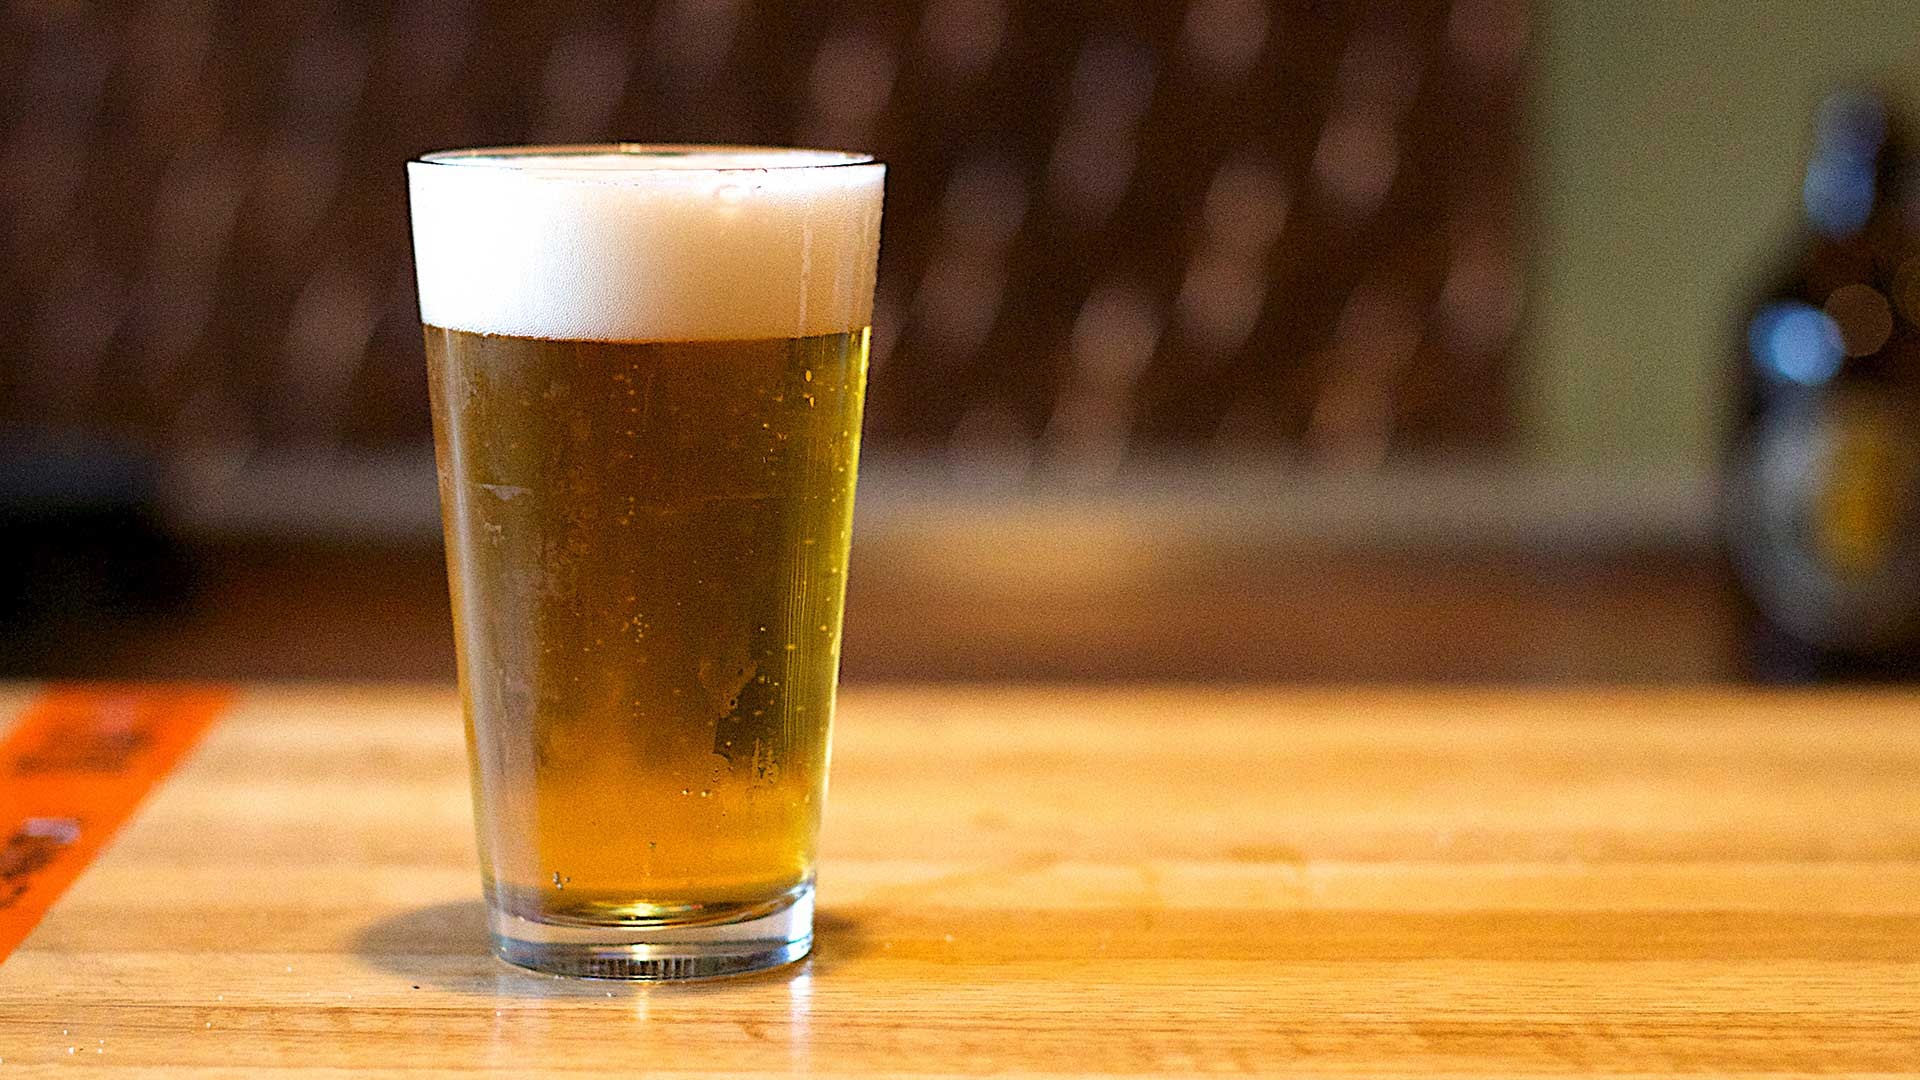 A glass of beer on a table.